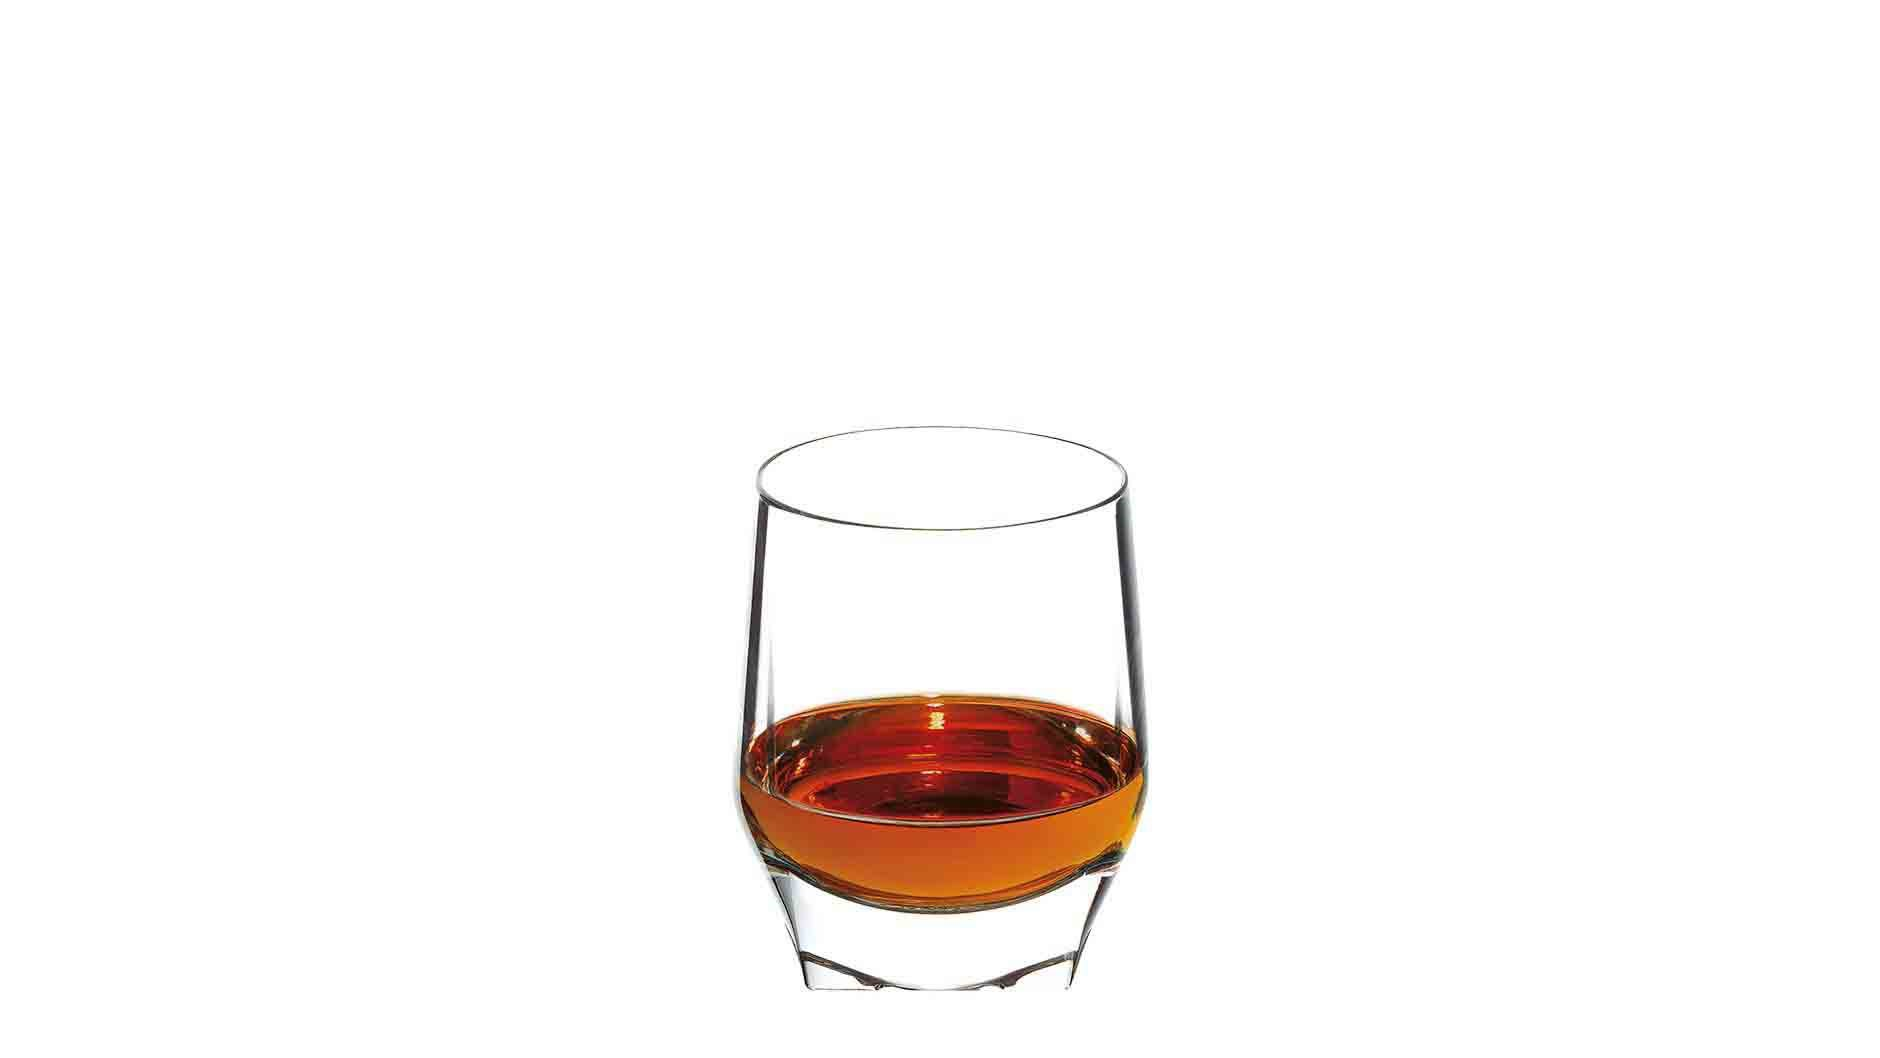 The John Walker Perfect Serve in a tumbler